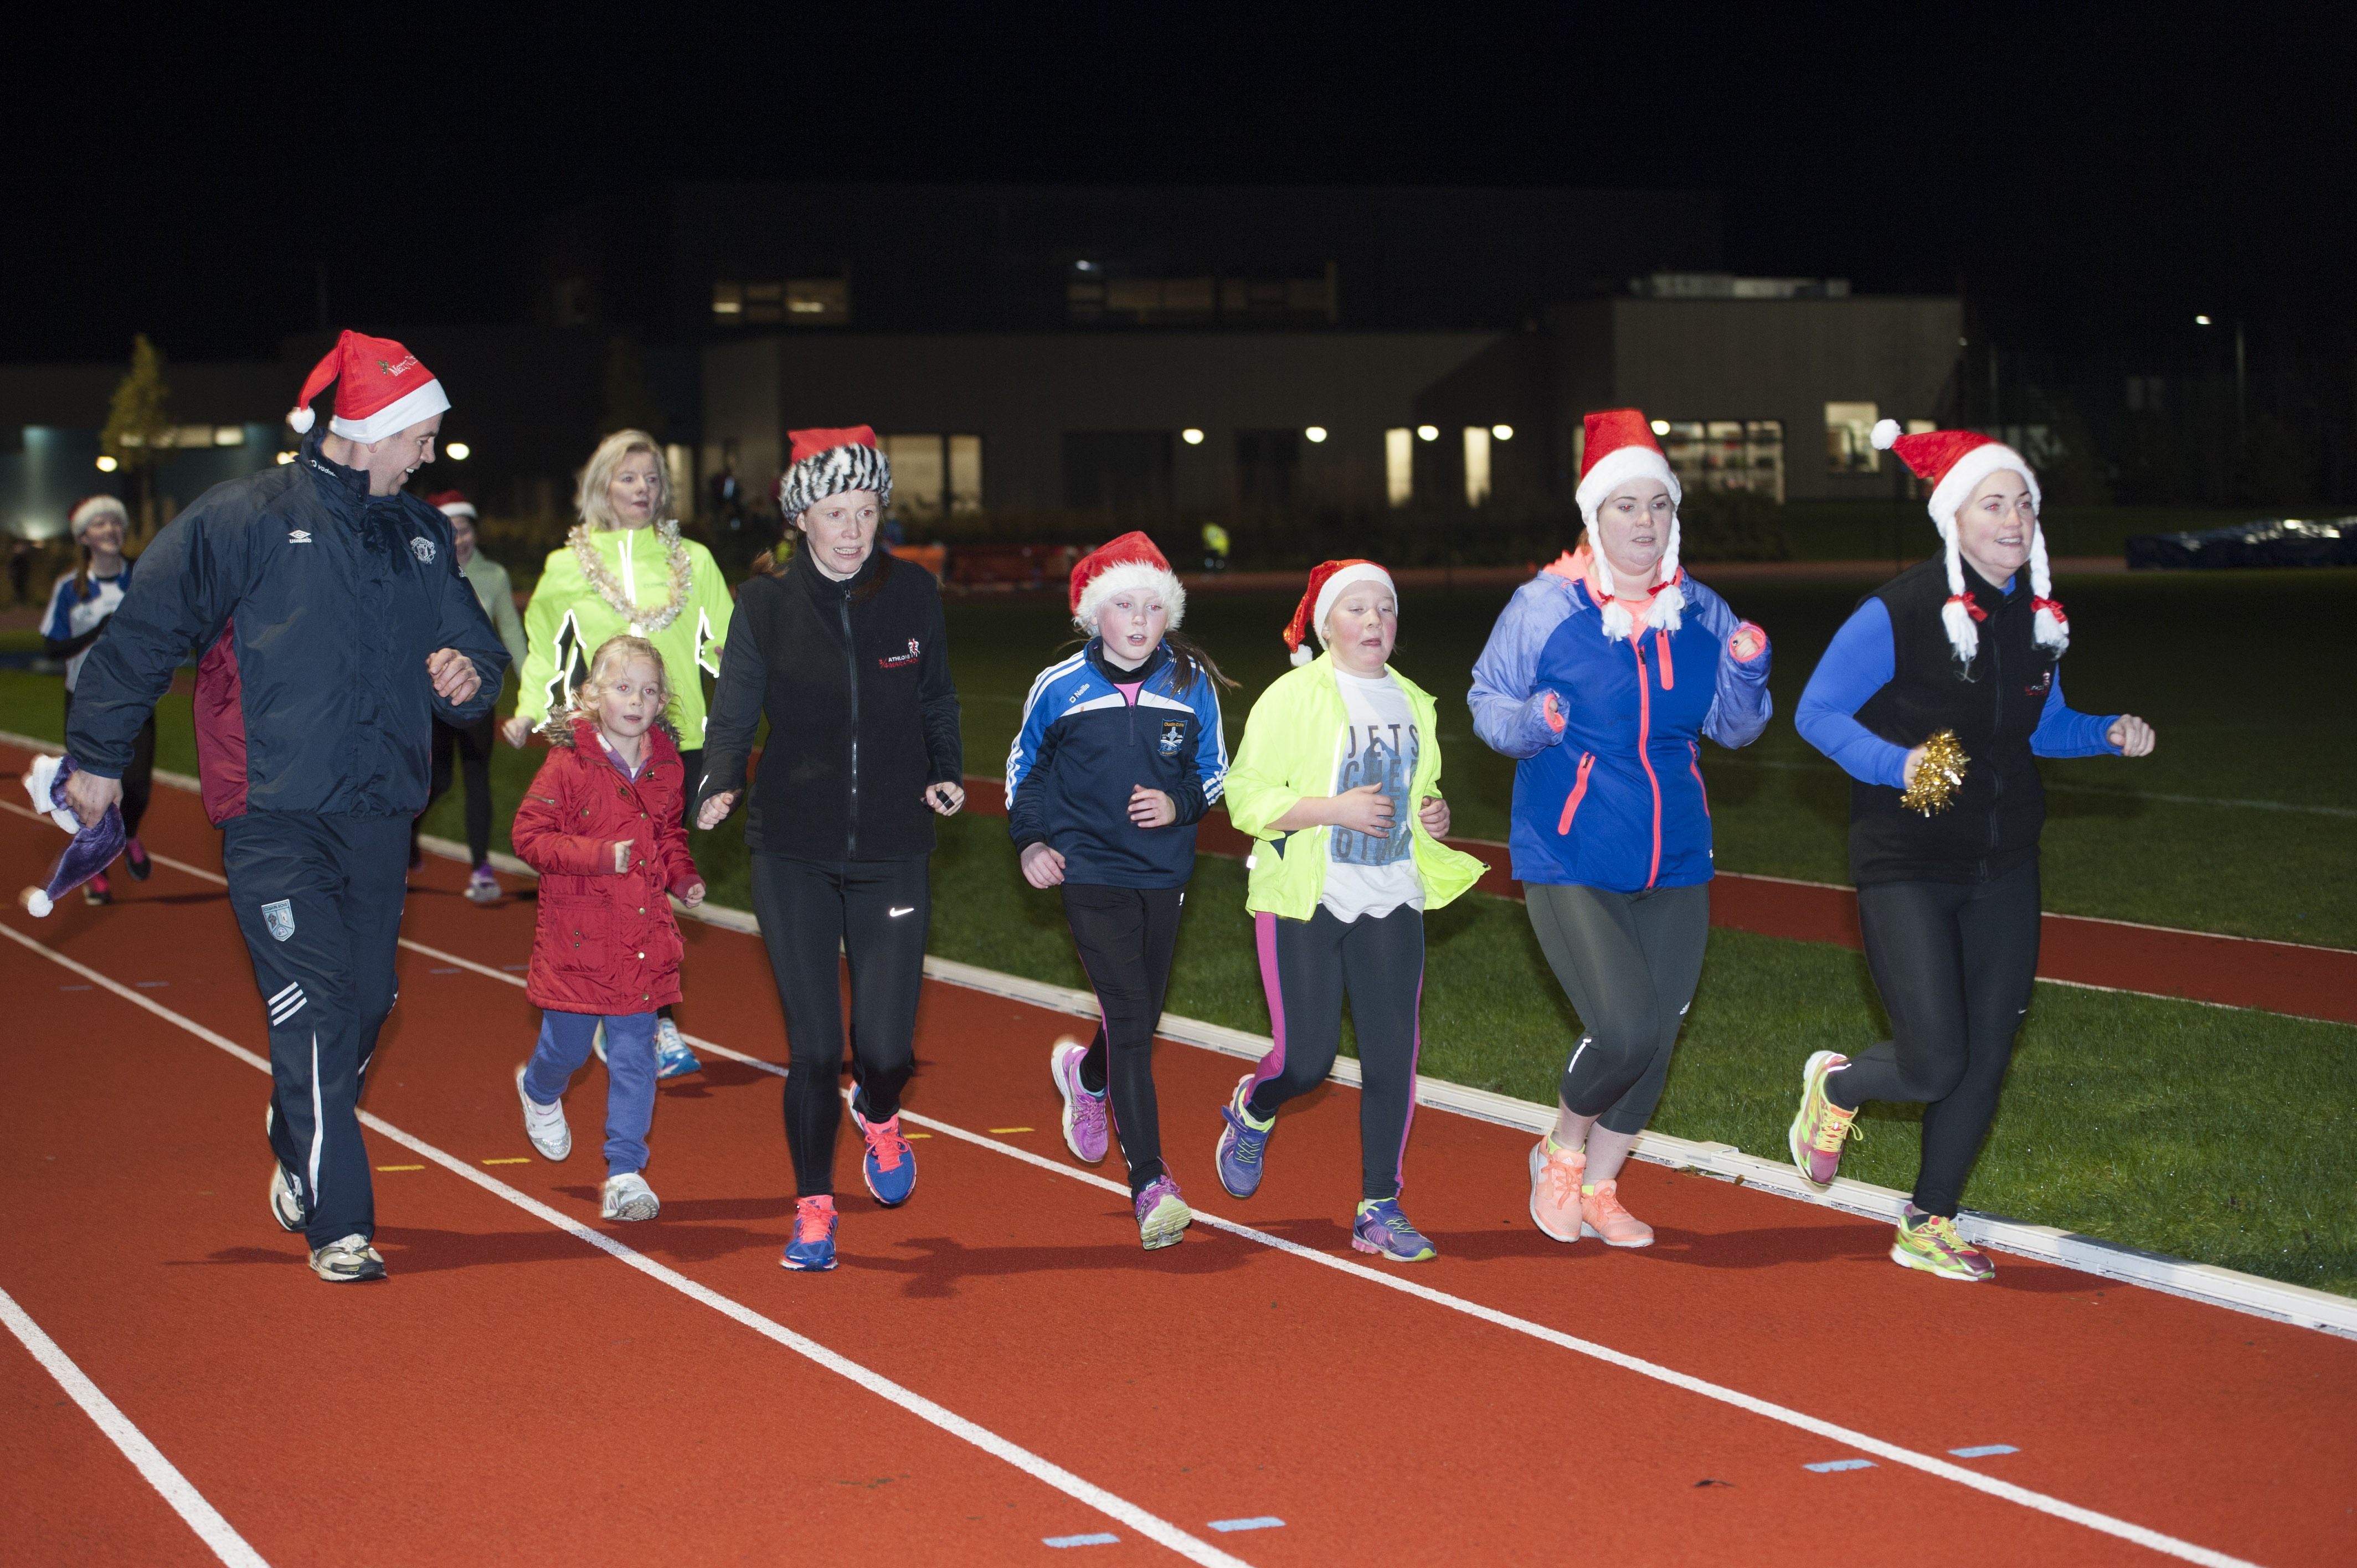 Some of the runners taking part in the Clones AC Santa run at The Peacelink. ©Rory Geary/The Northern Standard